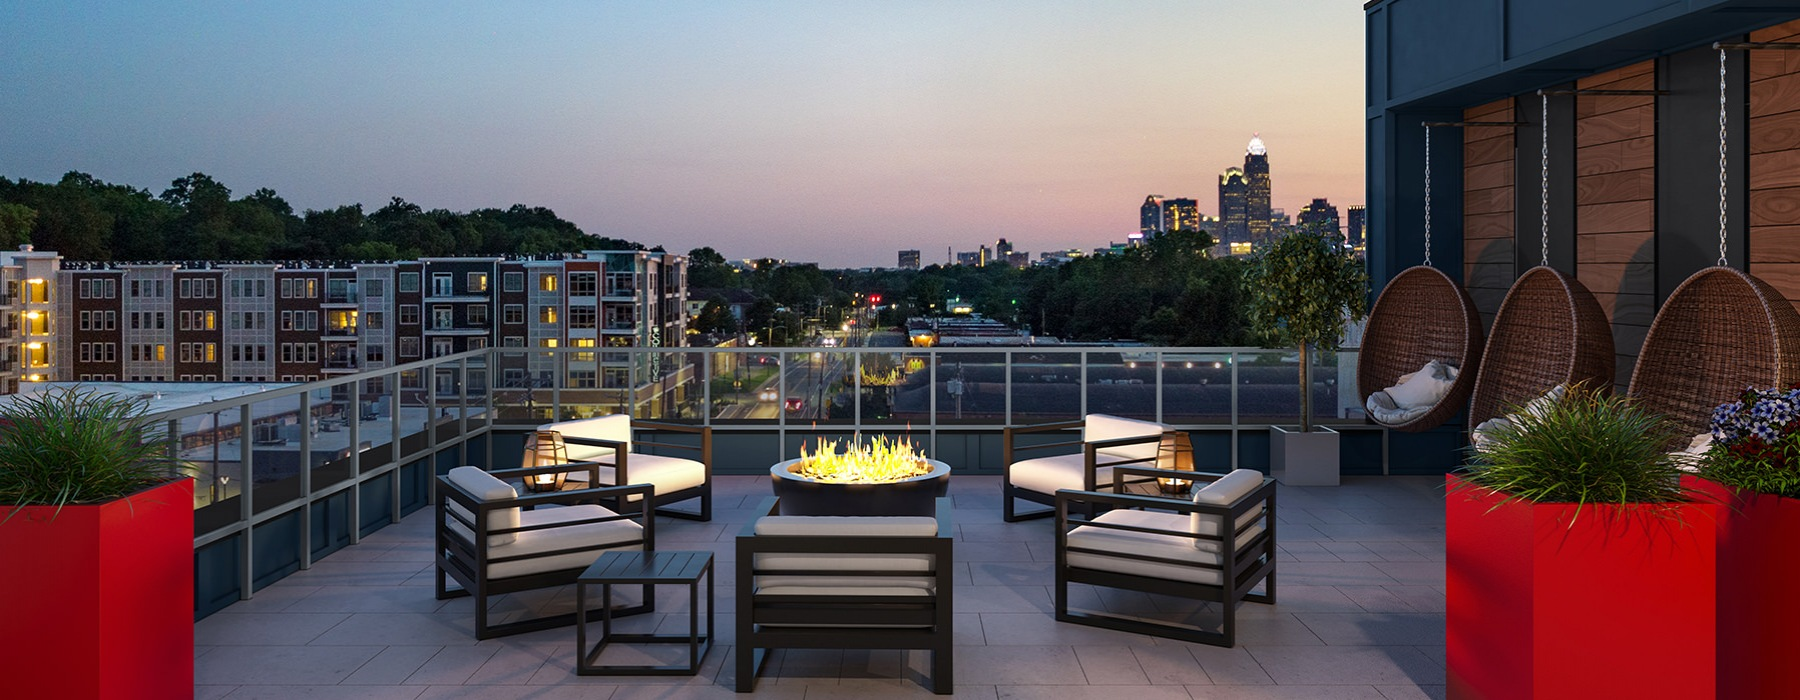 Rooftop Lounge at Sunset at Bainbridge NoDa